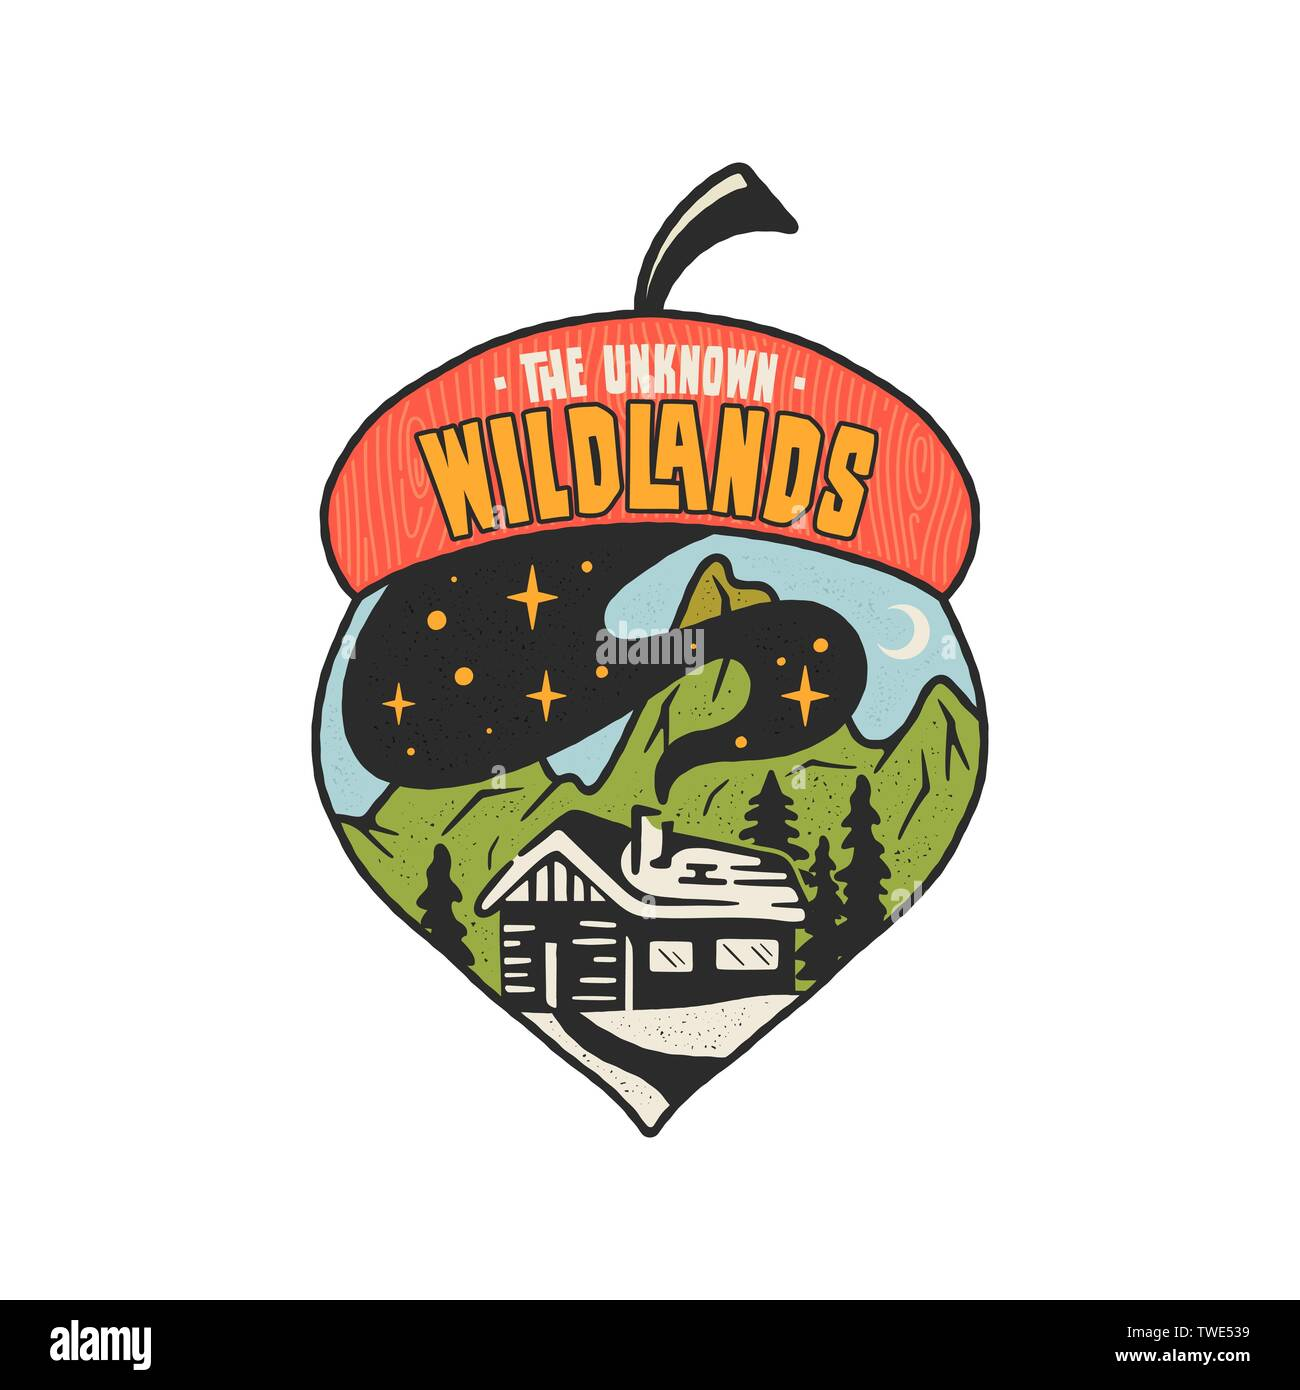 Camping badge acorn illustration design. Outdoor logo with quote - The unknown wildlands, for t shirt, posters. Included retro mountains, woods house - Stock Vector